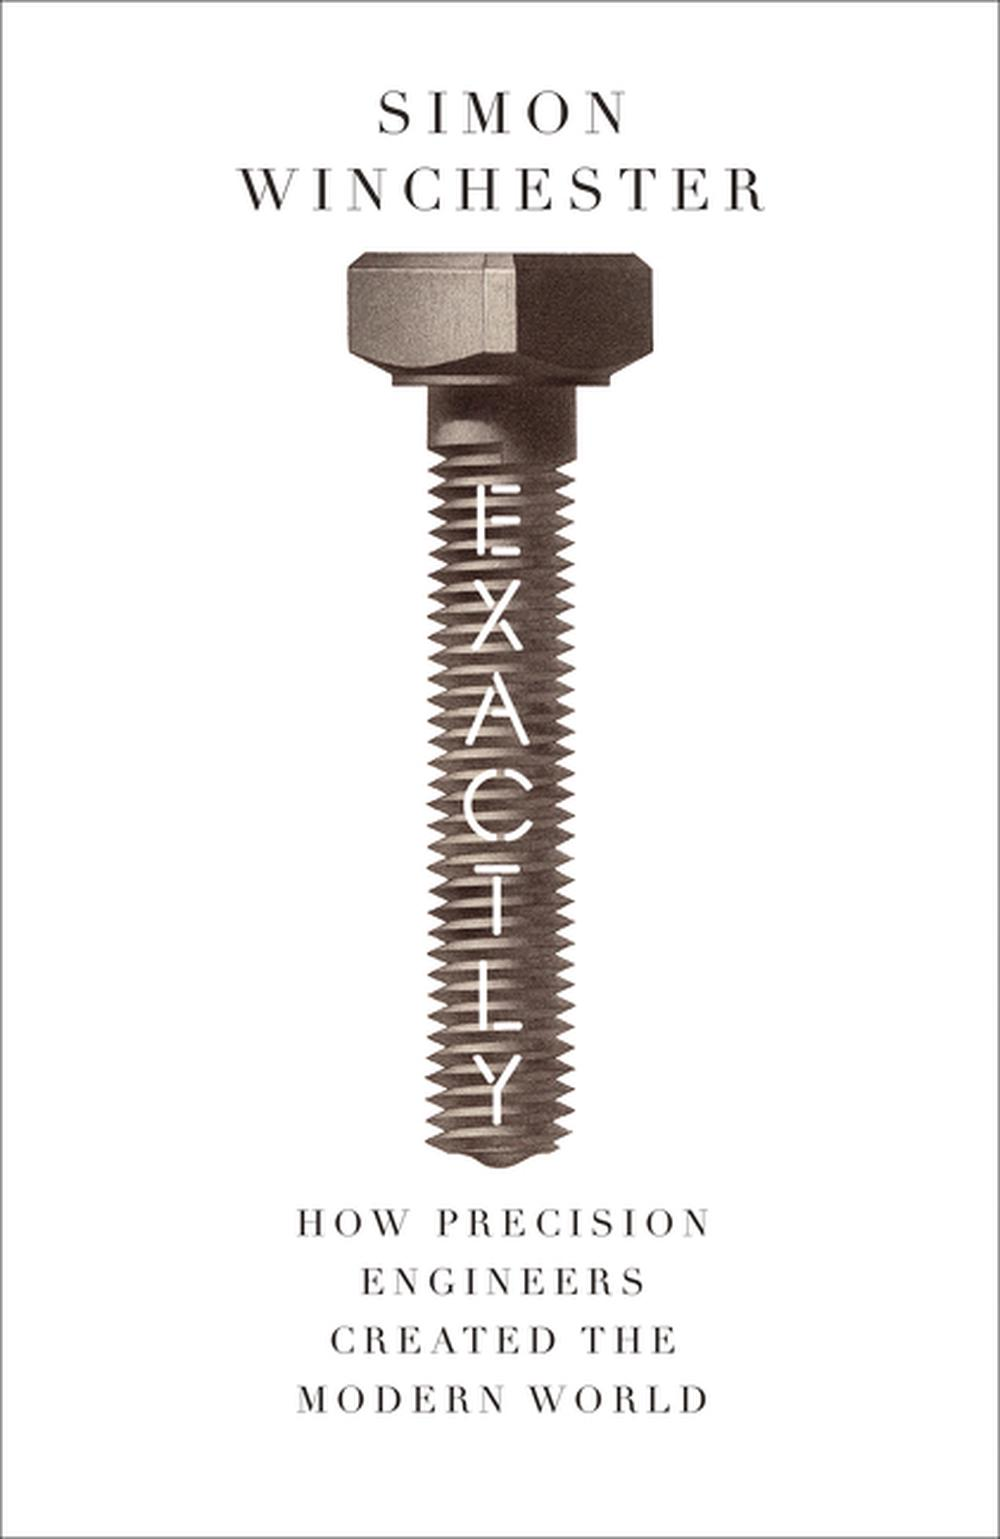 Exactly! A Brief History of Precision by Simon Winchester, ISBN: 9780008241766